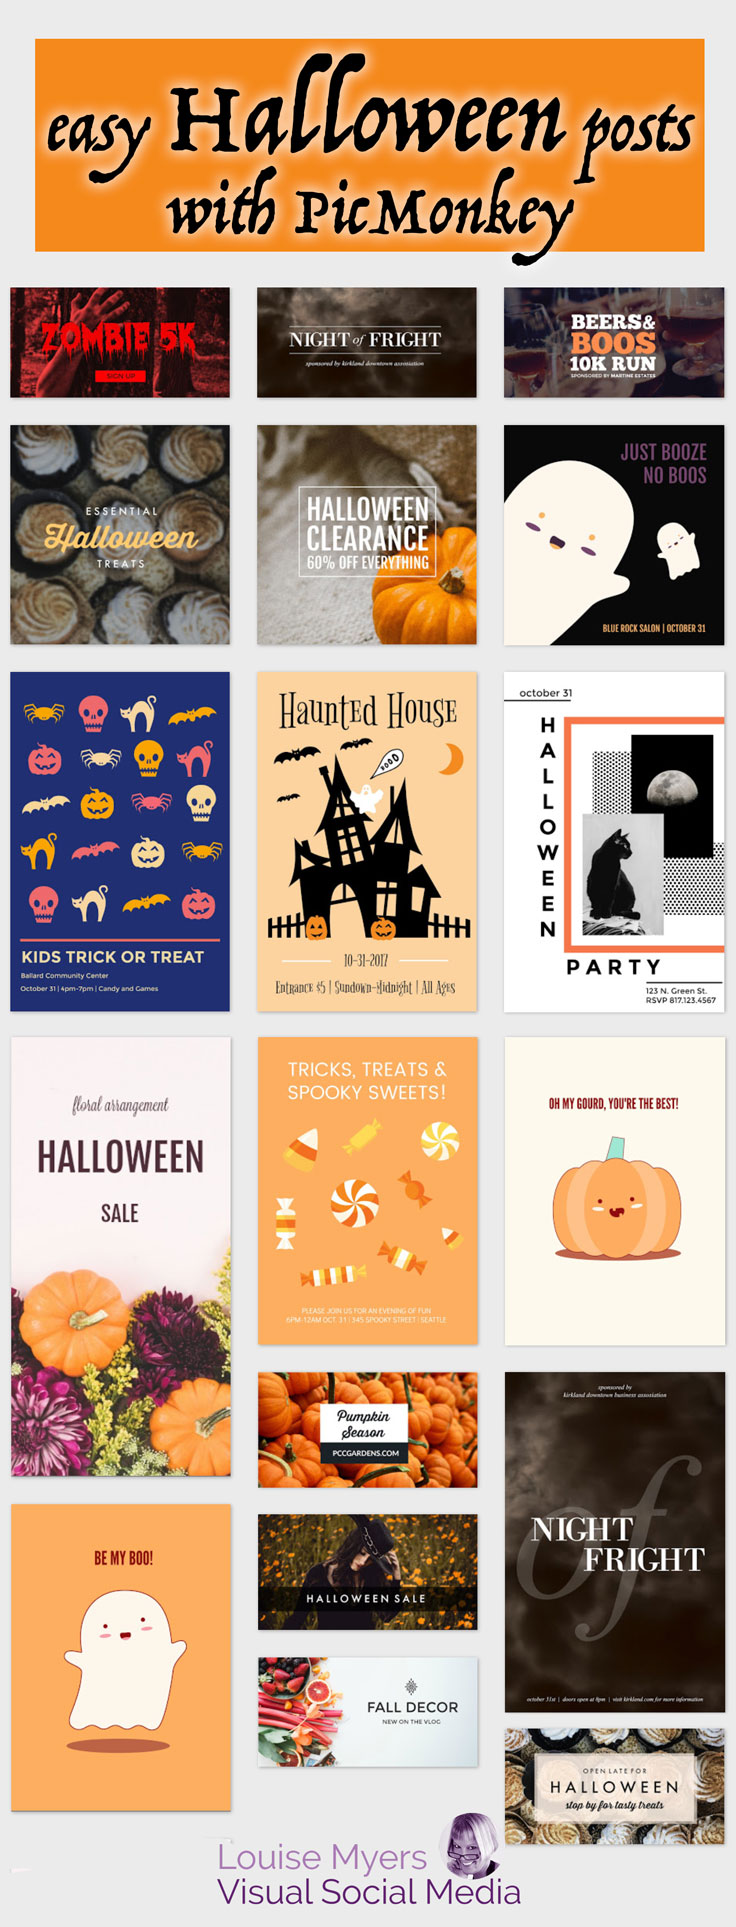 how to halloween your blog and profile pictures: fun & easy!